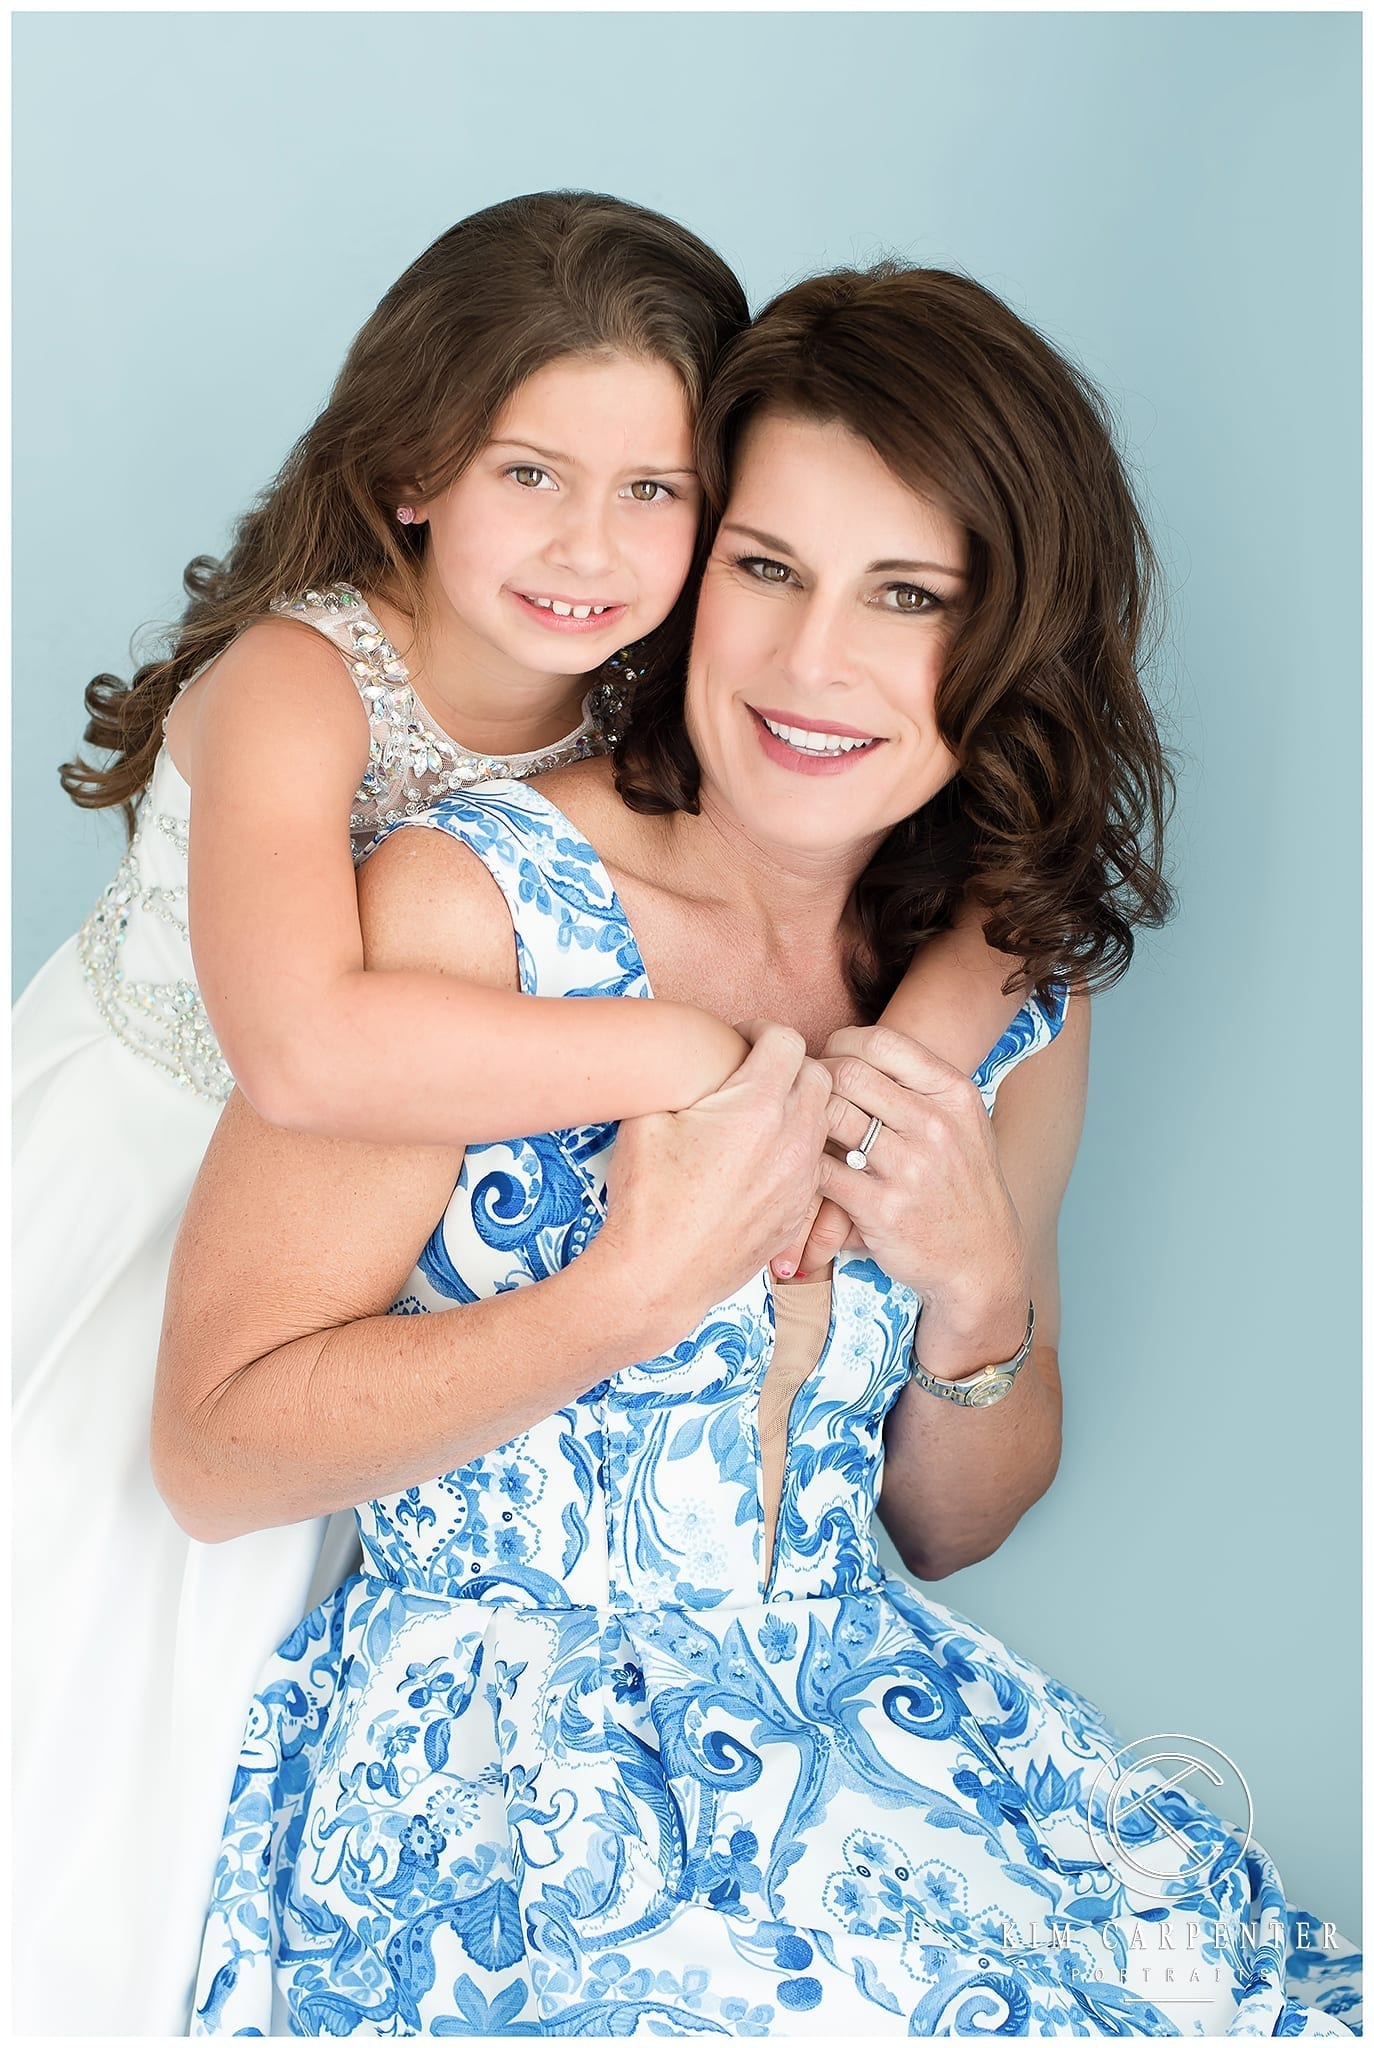 Lakeland Photographer - Mother and daughter hugging each other in blue and white dresses with a blue background